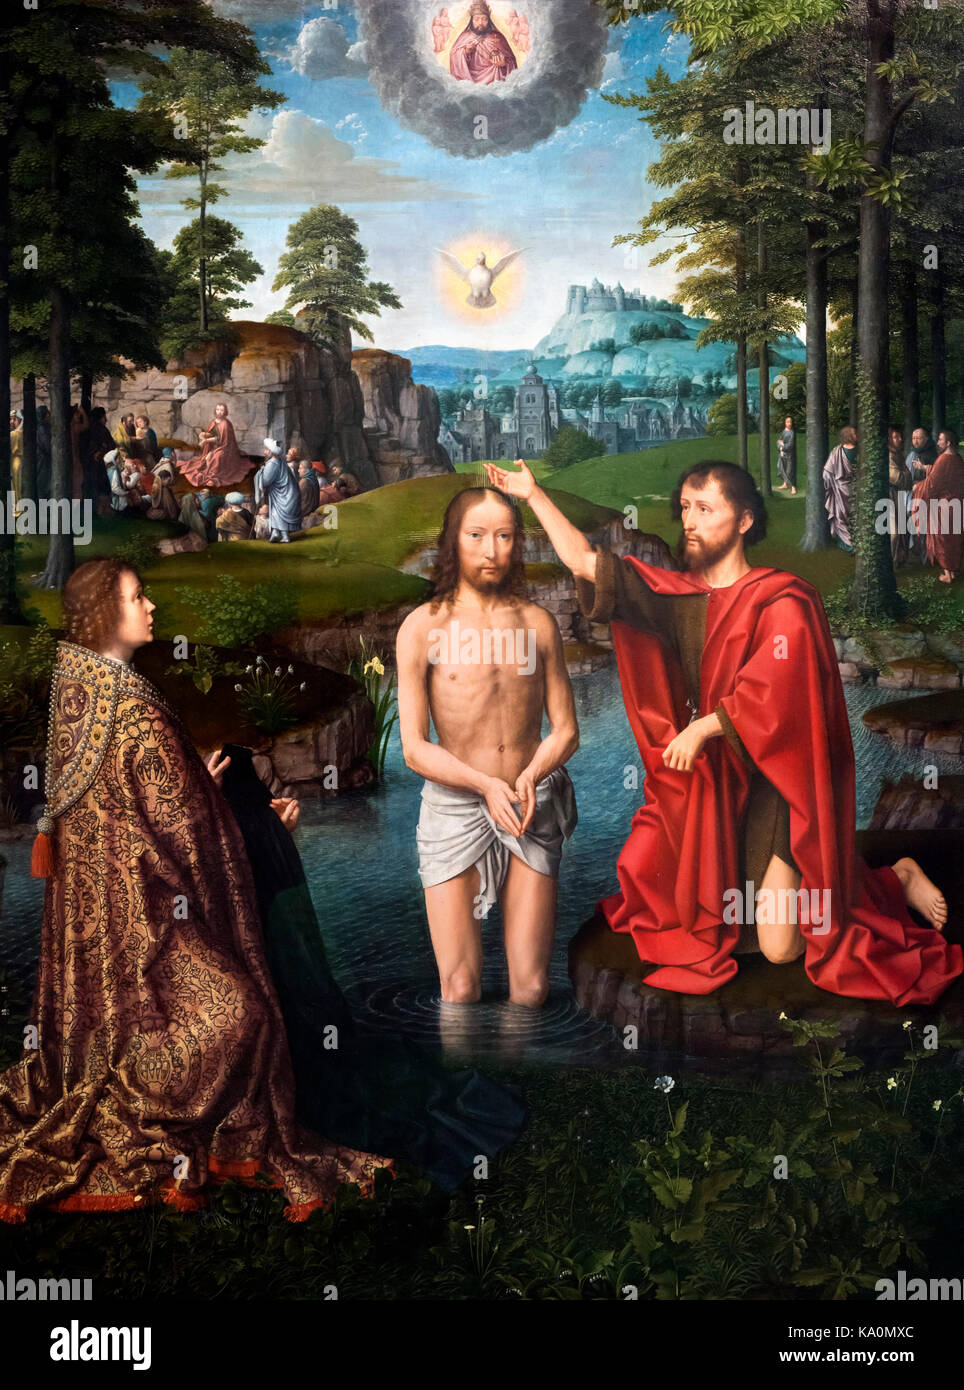 The Baptism of Christ, the central panel of a triptych by Gerard David (c.1460-1523), oil on panel, c.1505. Gerard - Stock Image